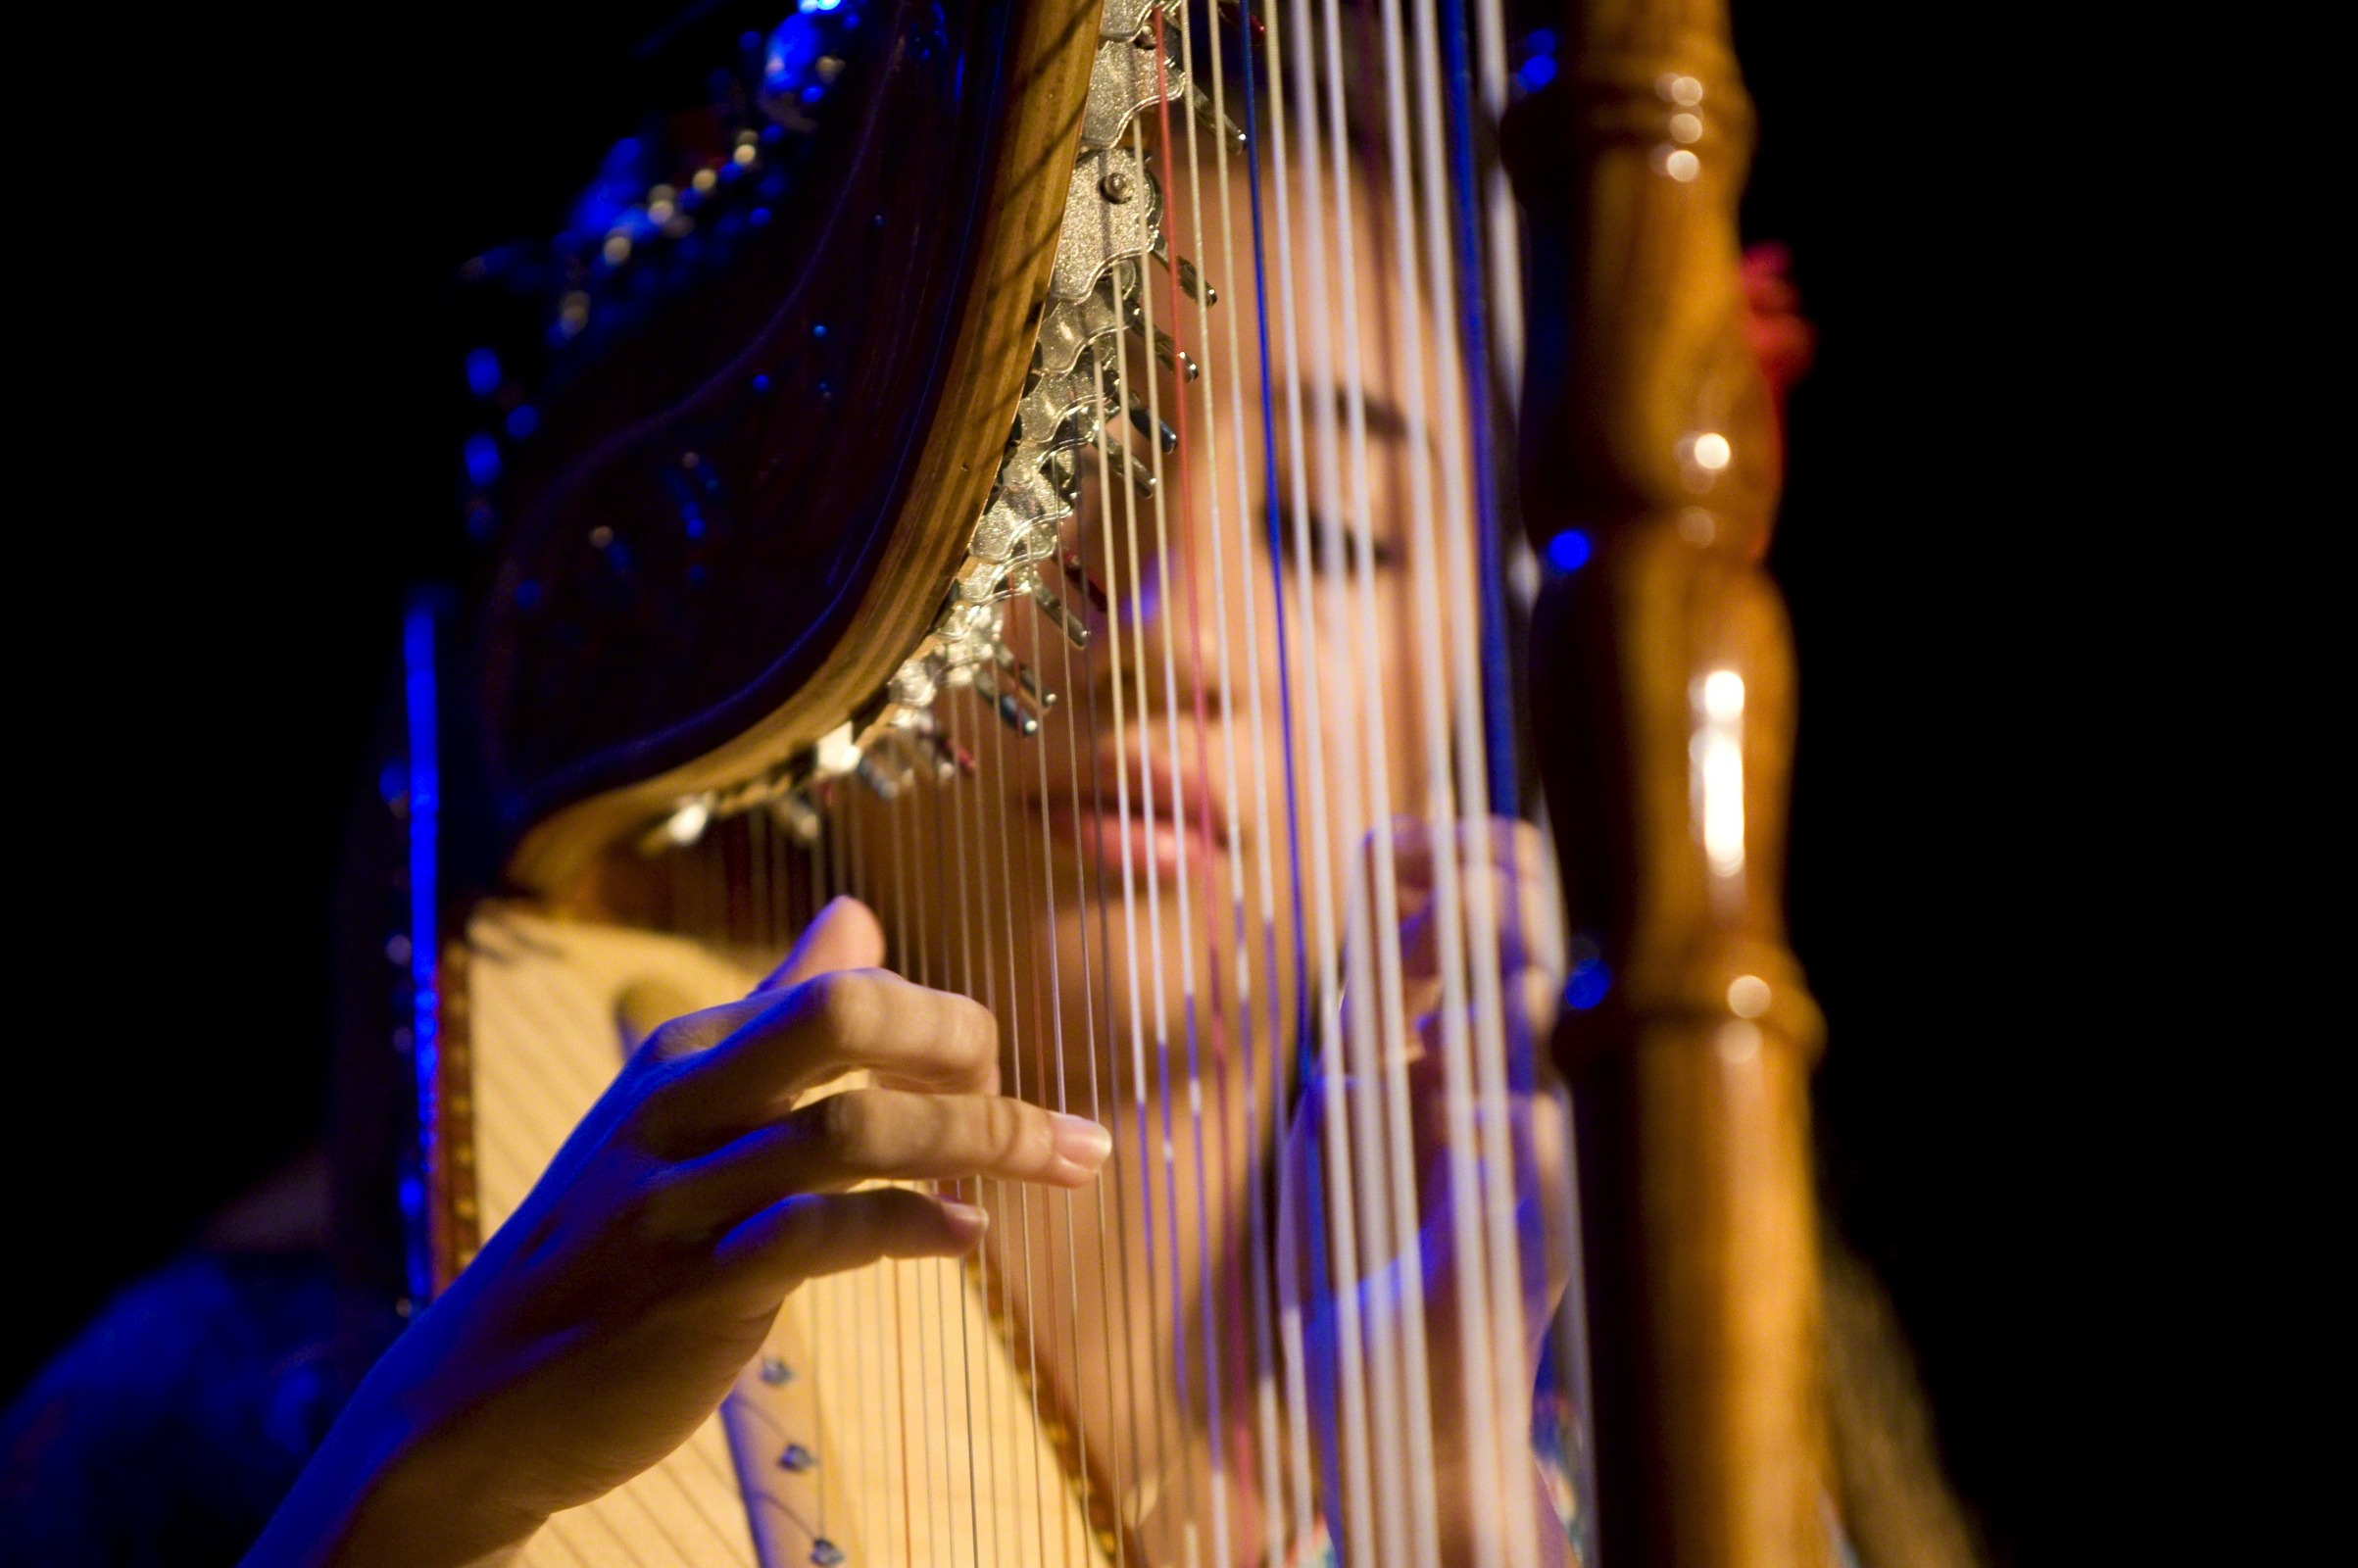 Young Woman on the Harp 2406x1600